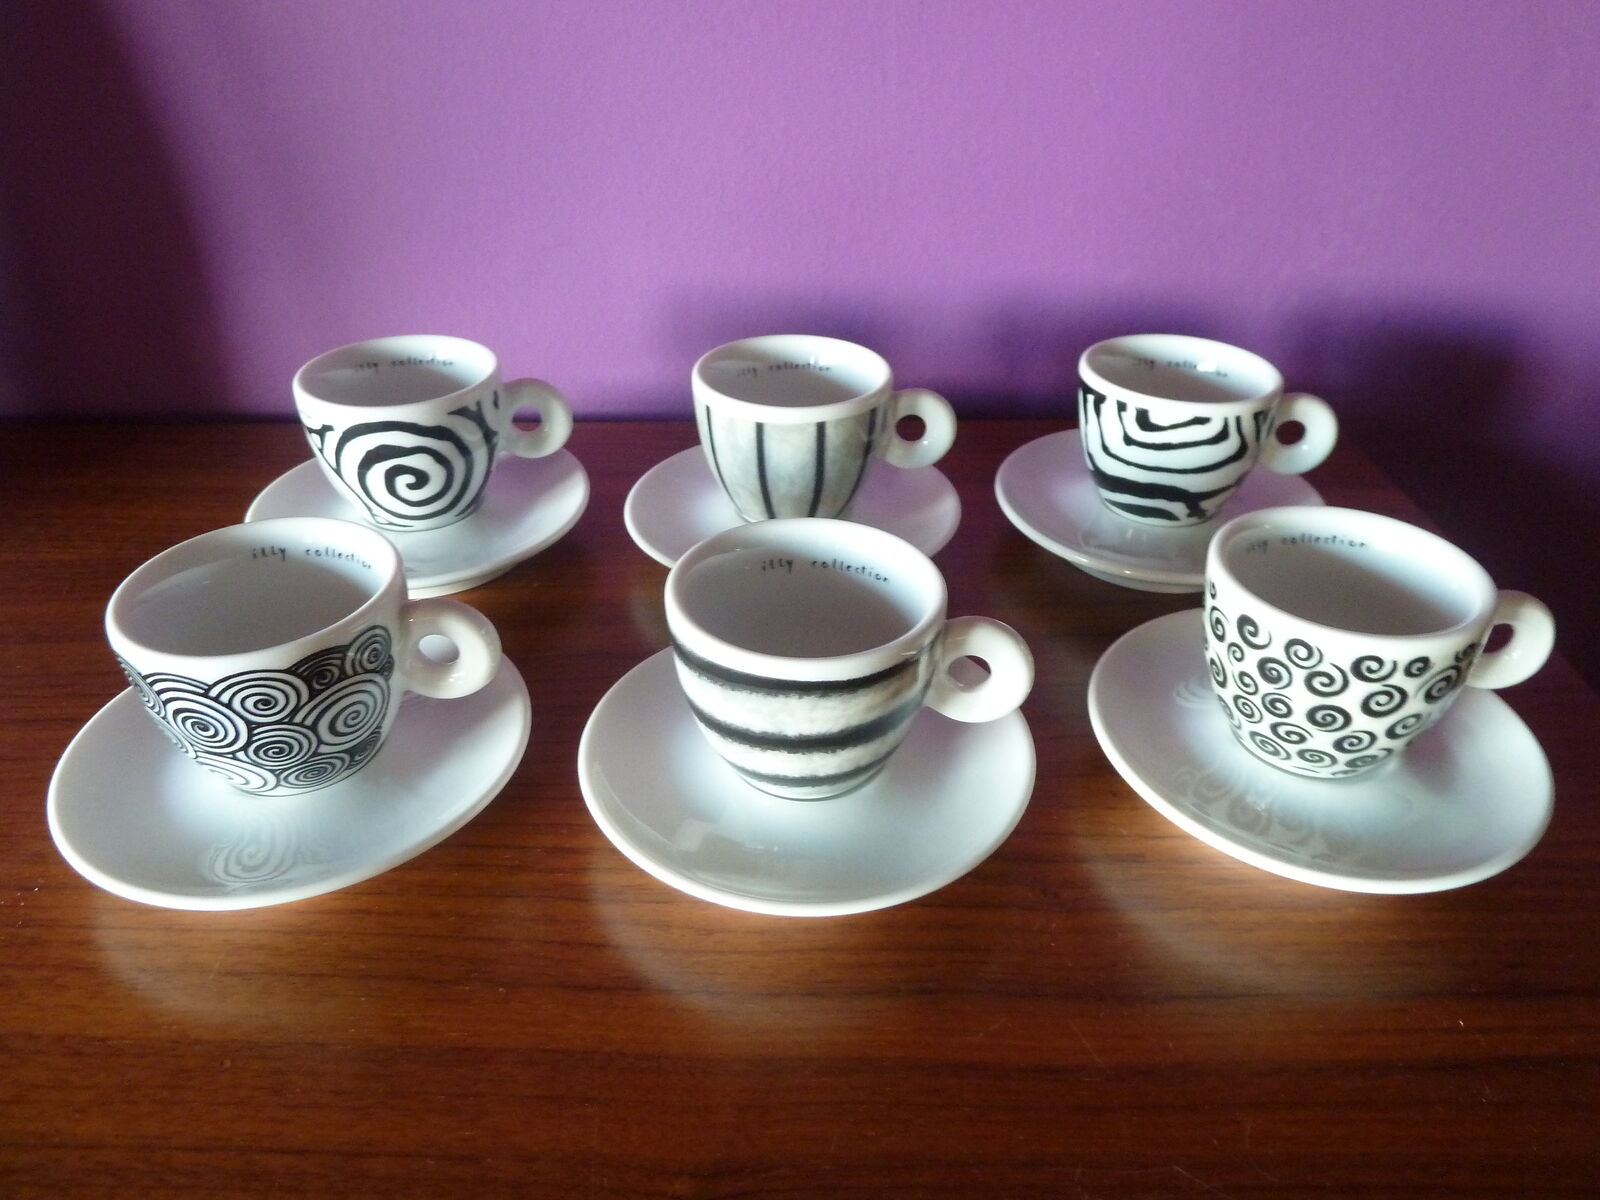 ILLY COLLECTION 1995 SPIRALI BY ROBERTA PIETROBELLI-SIGNED AND NUMBERED